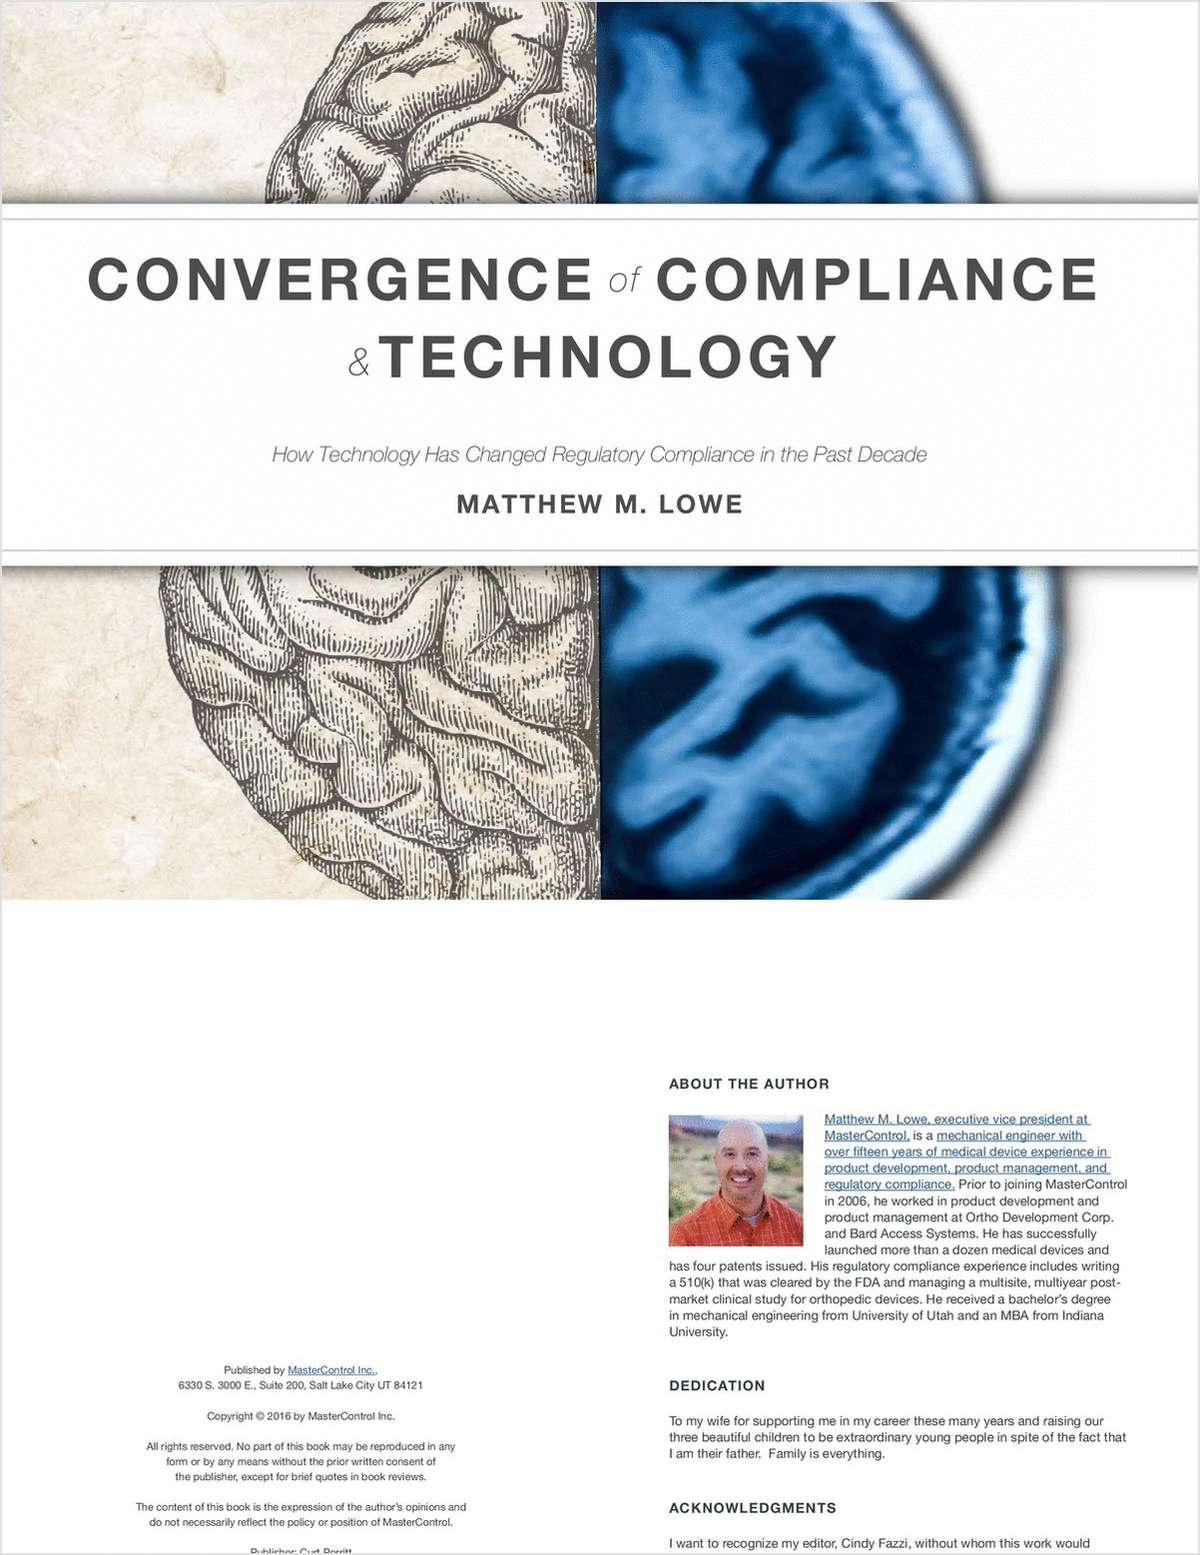 Convergence of Compliance & Technology